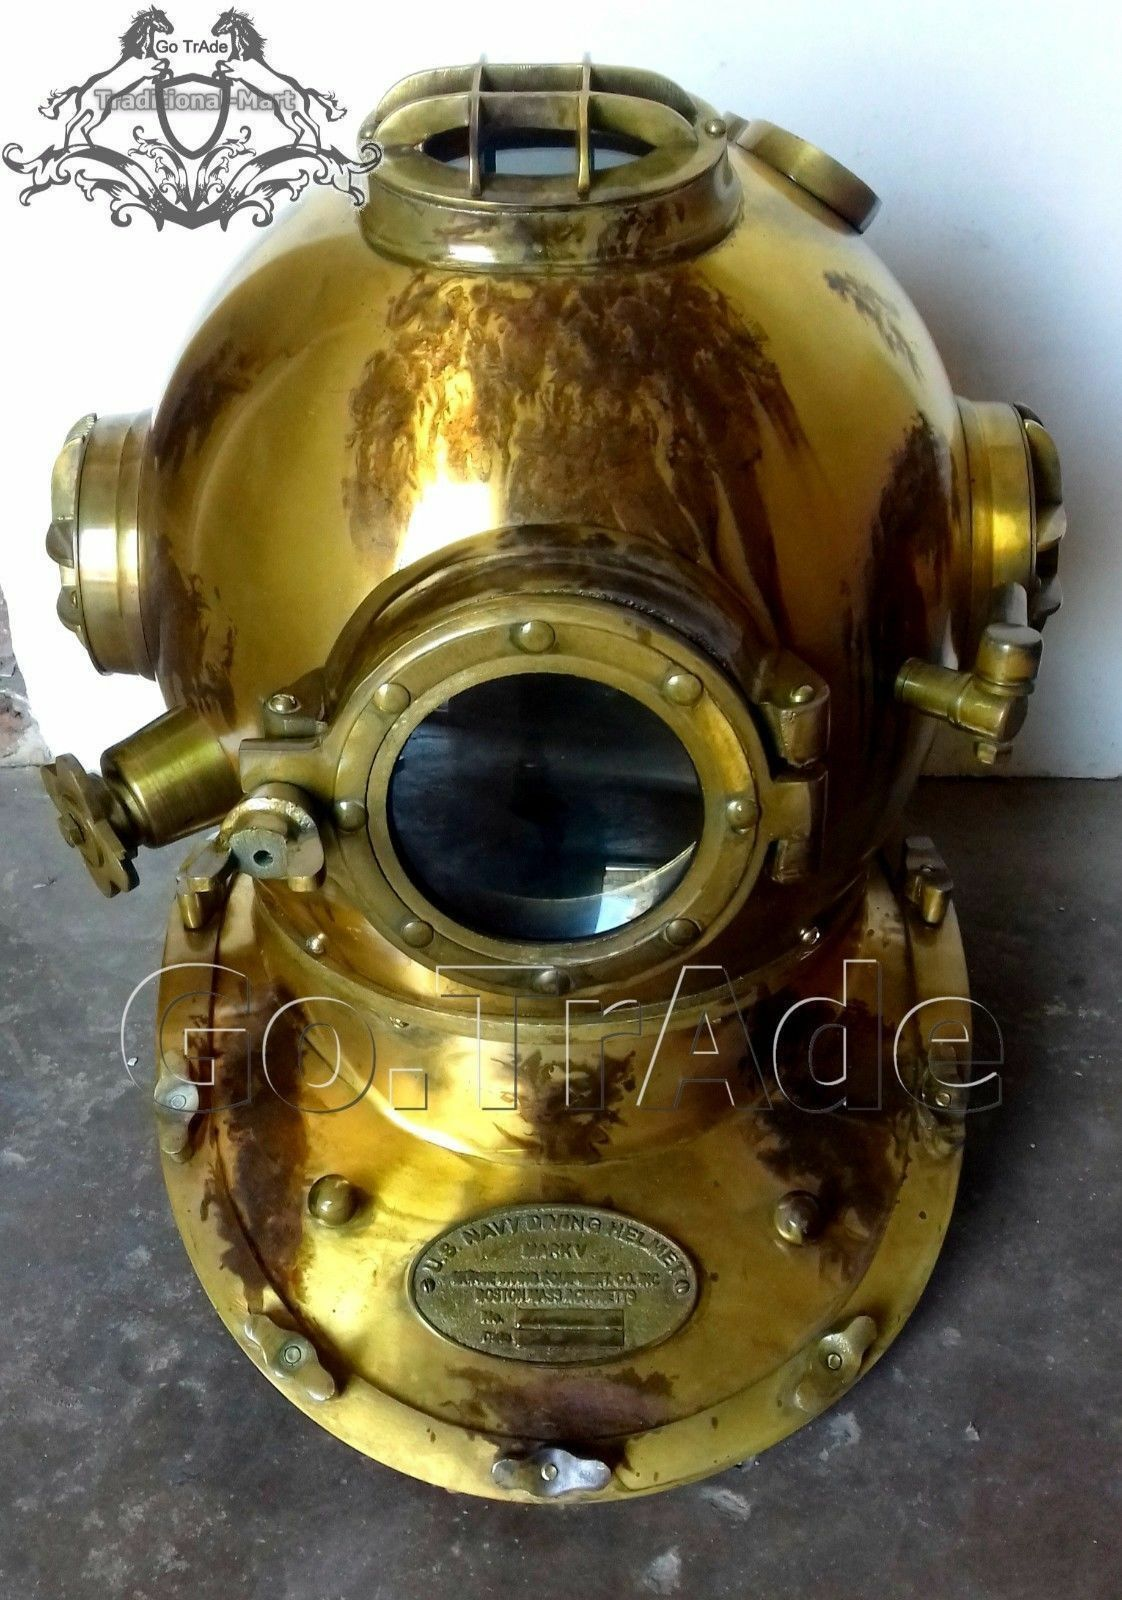 Antique Royal Scuba Diving US Navy Mark V Deep Sca Vintage Divers Helmet Replica